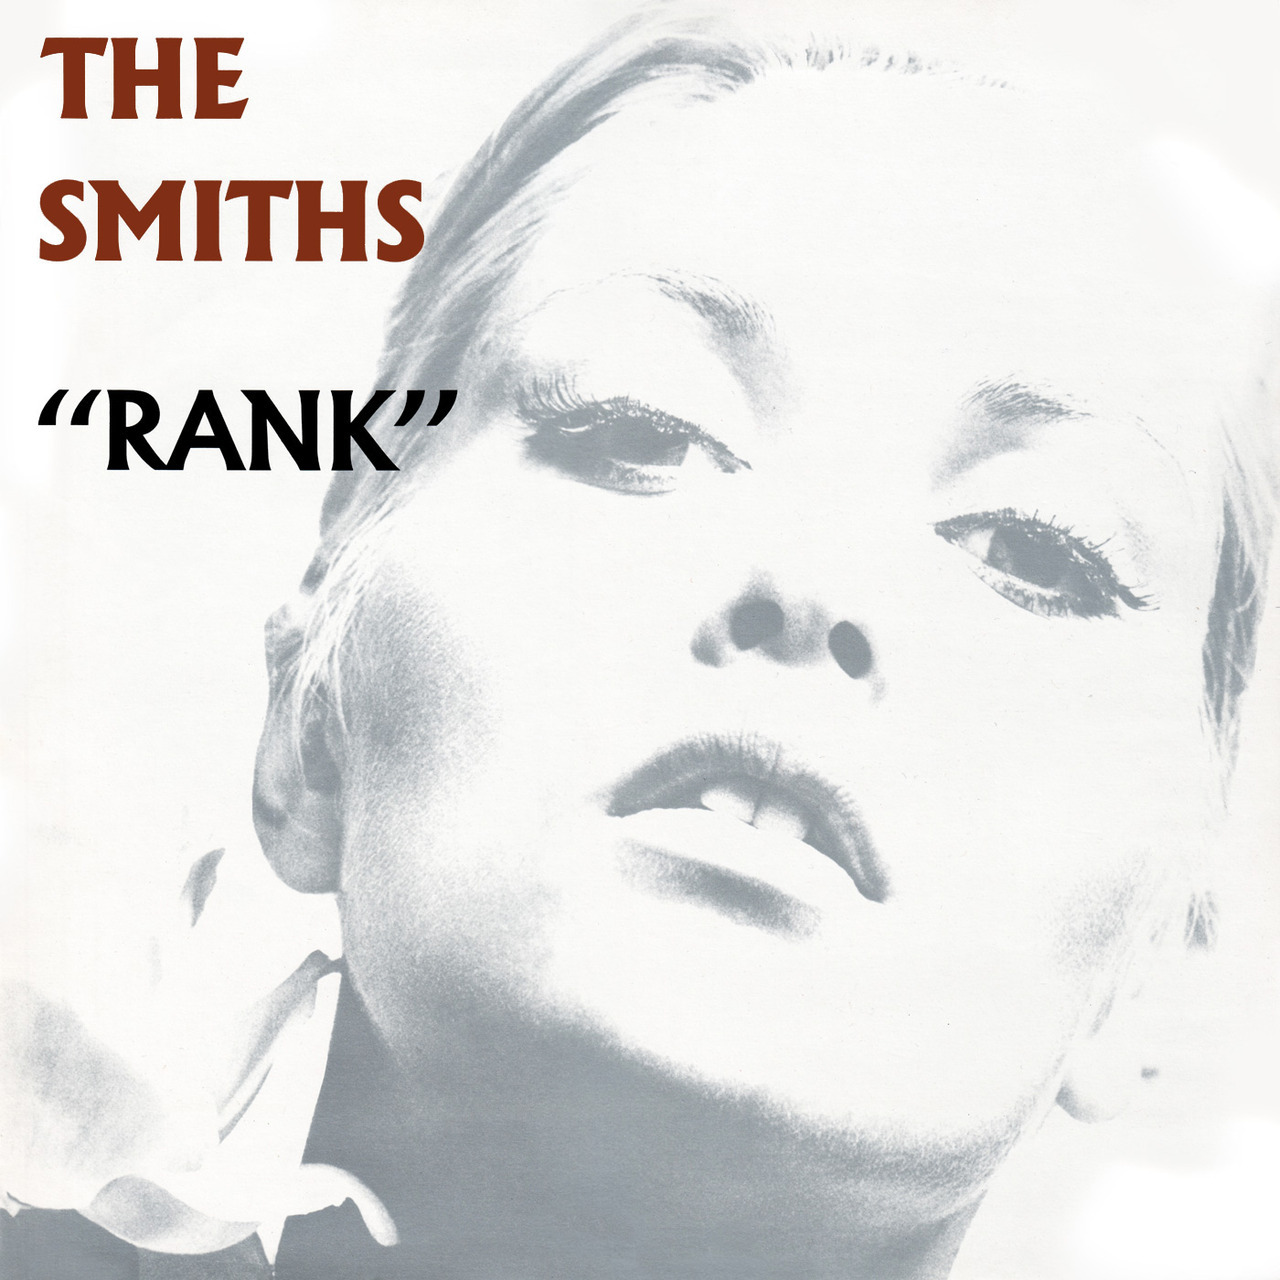 On this day in 1988, The Smiths released their posthumous live album, 'Rank,' which was recorded Oct. 23, 1986, in Kilburn, London